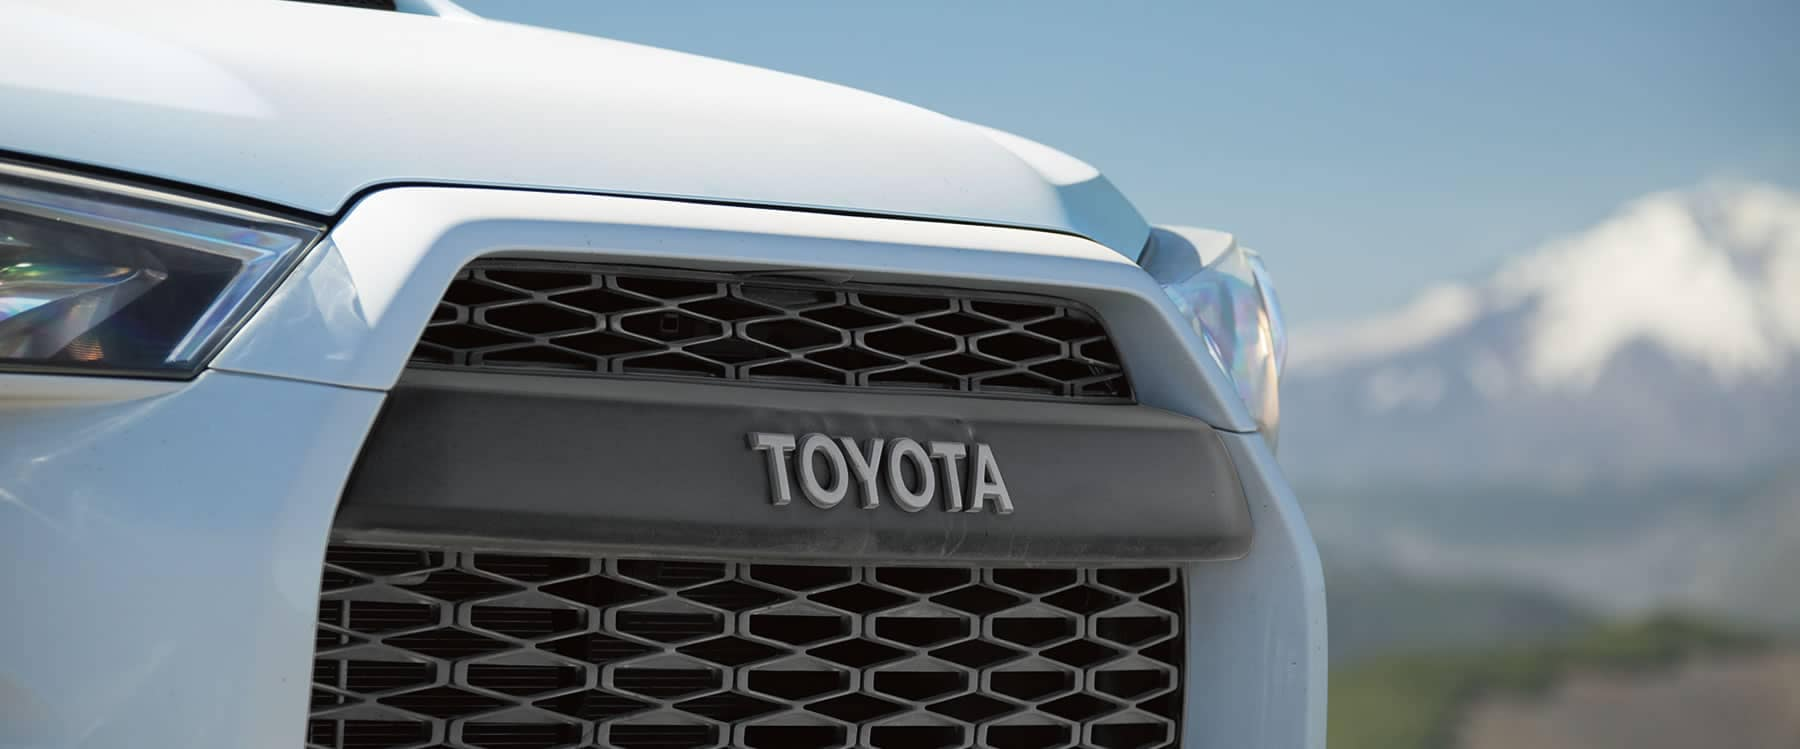 toyota-grill